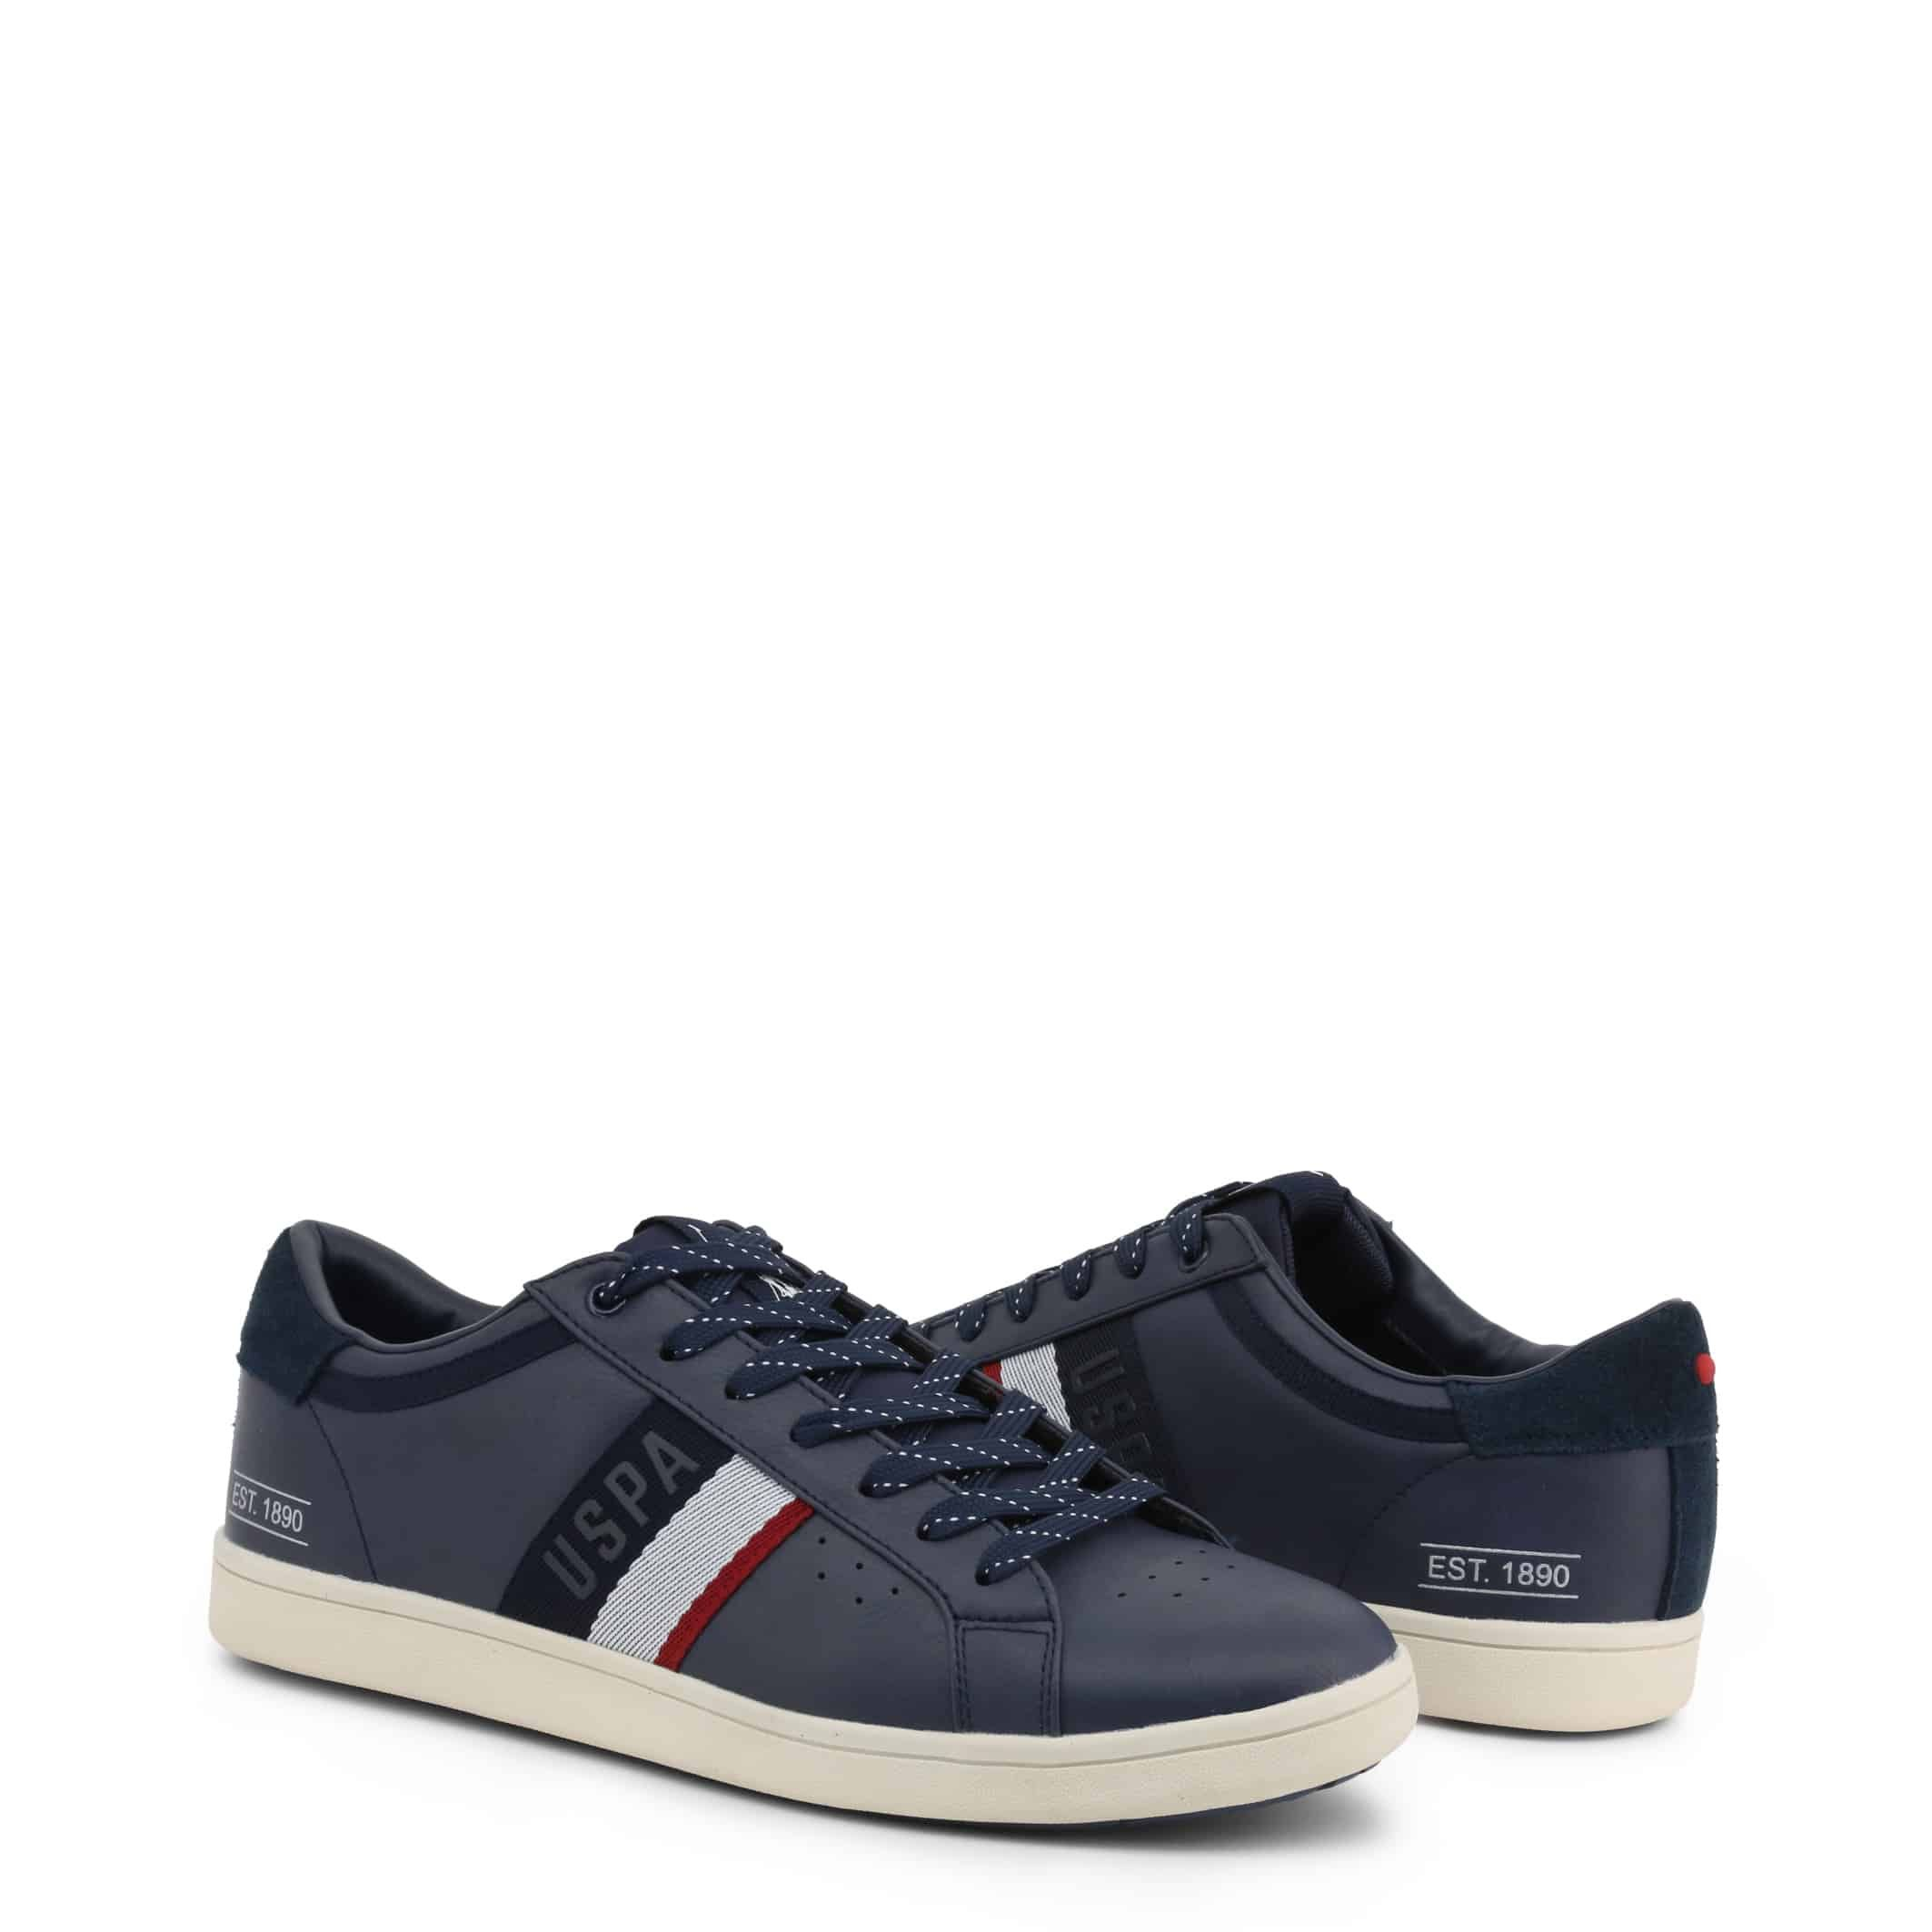 U.S. Polo Assn. - JARED4052S9_Y1  | You Fashion Outlet